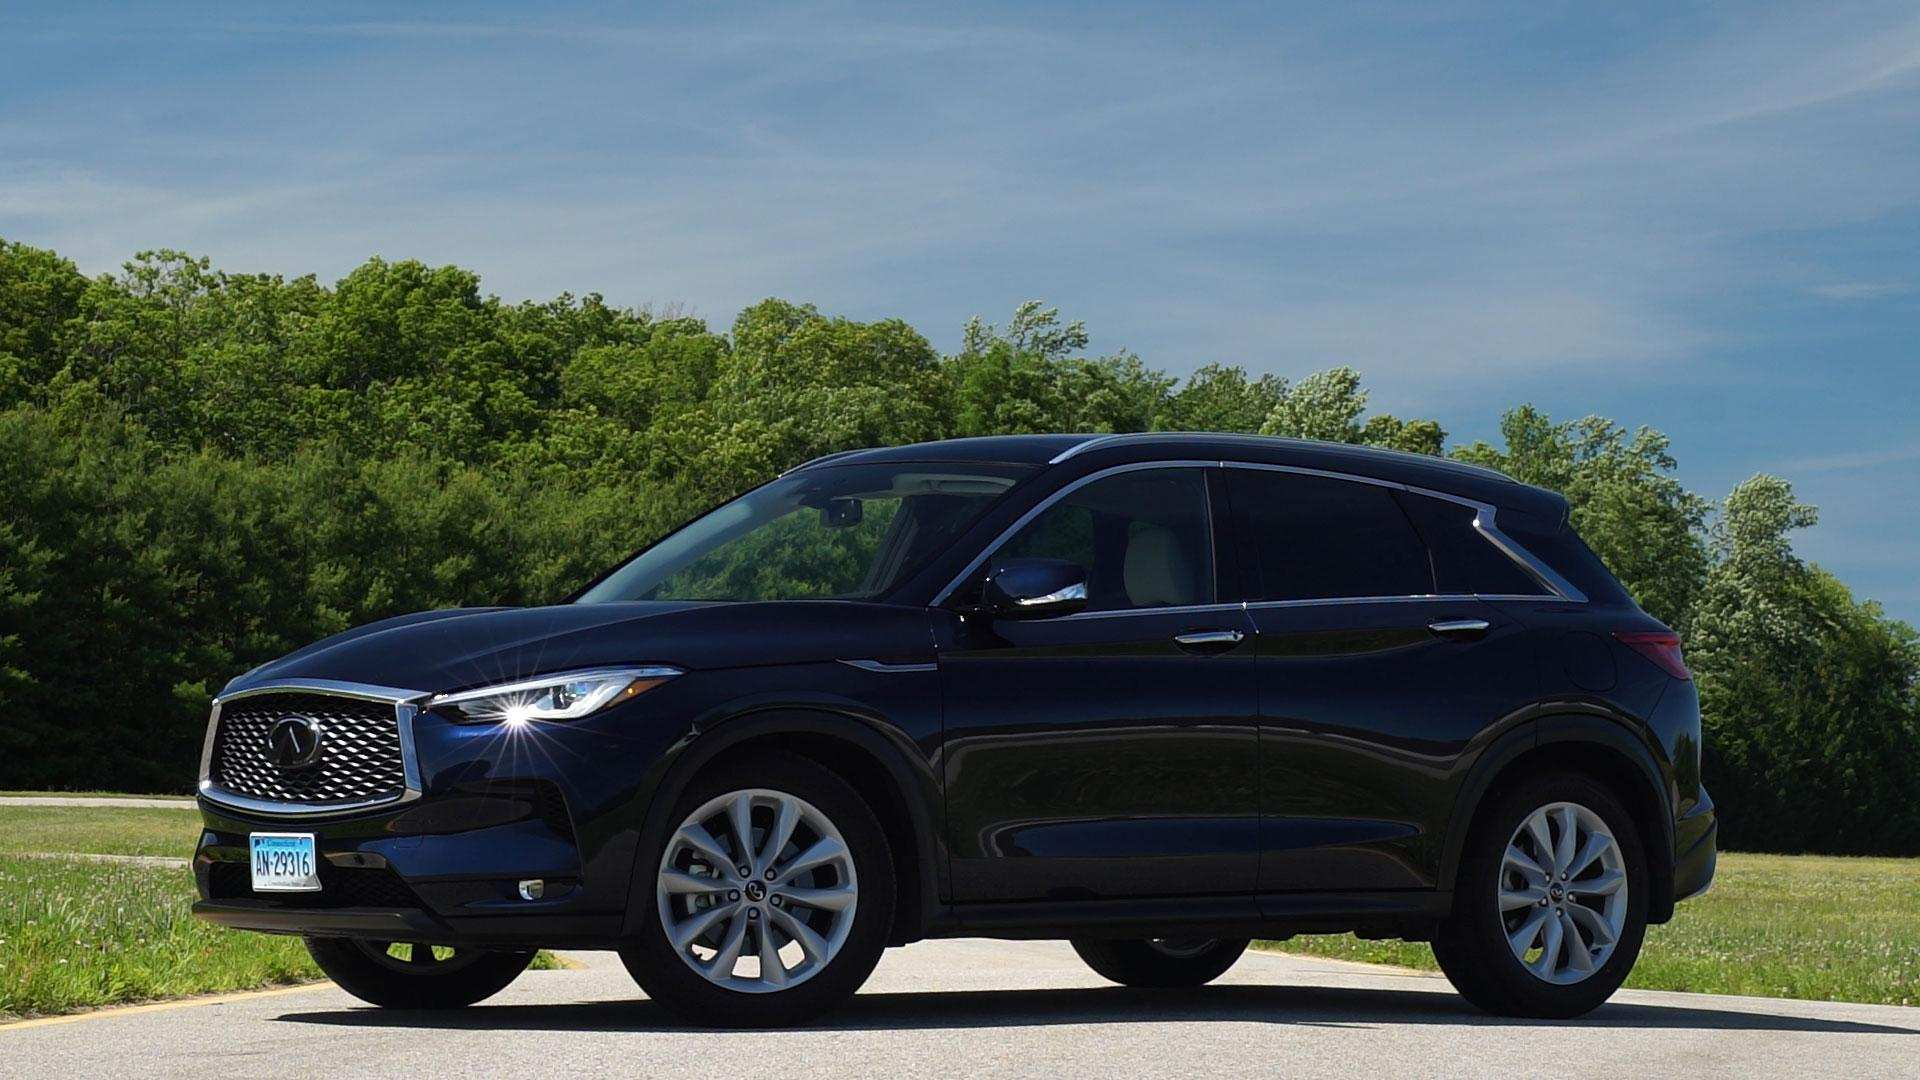 74 New 2019 Infiniti Qx50 Dimensions Price